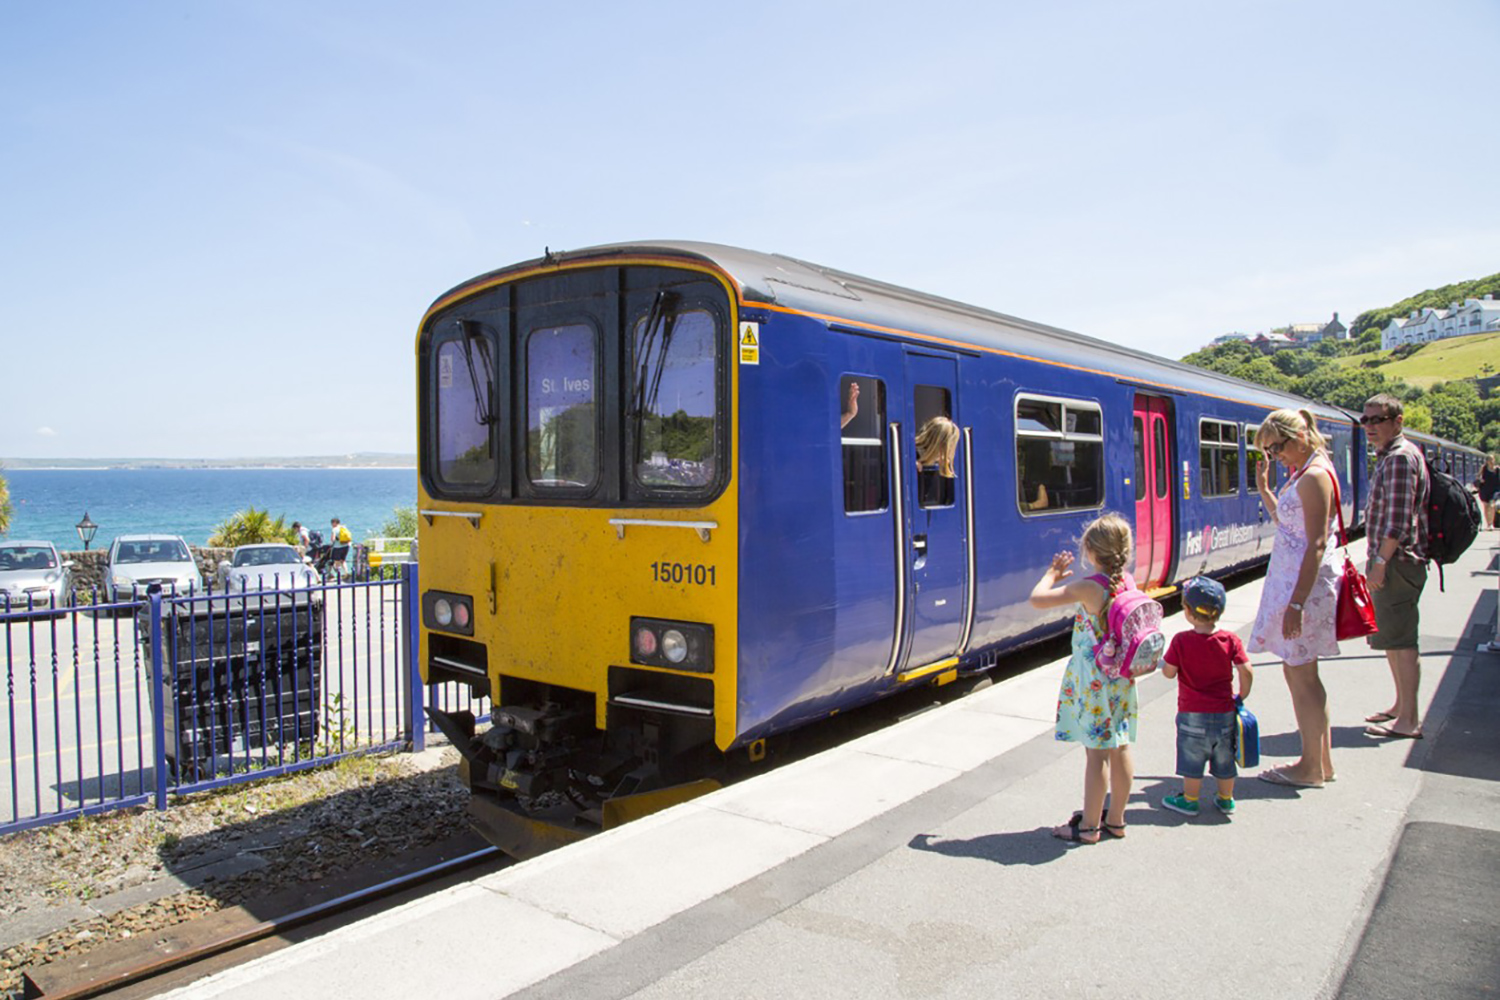 St Ives Cornwall Train Station